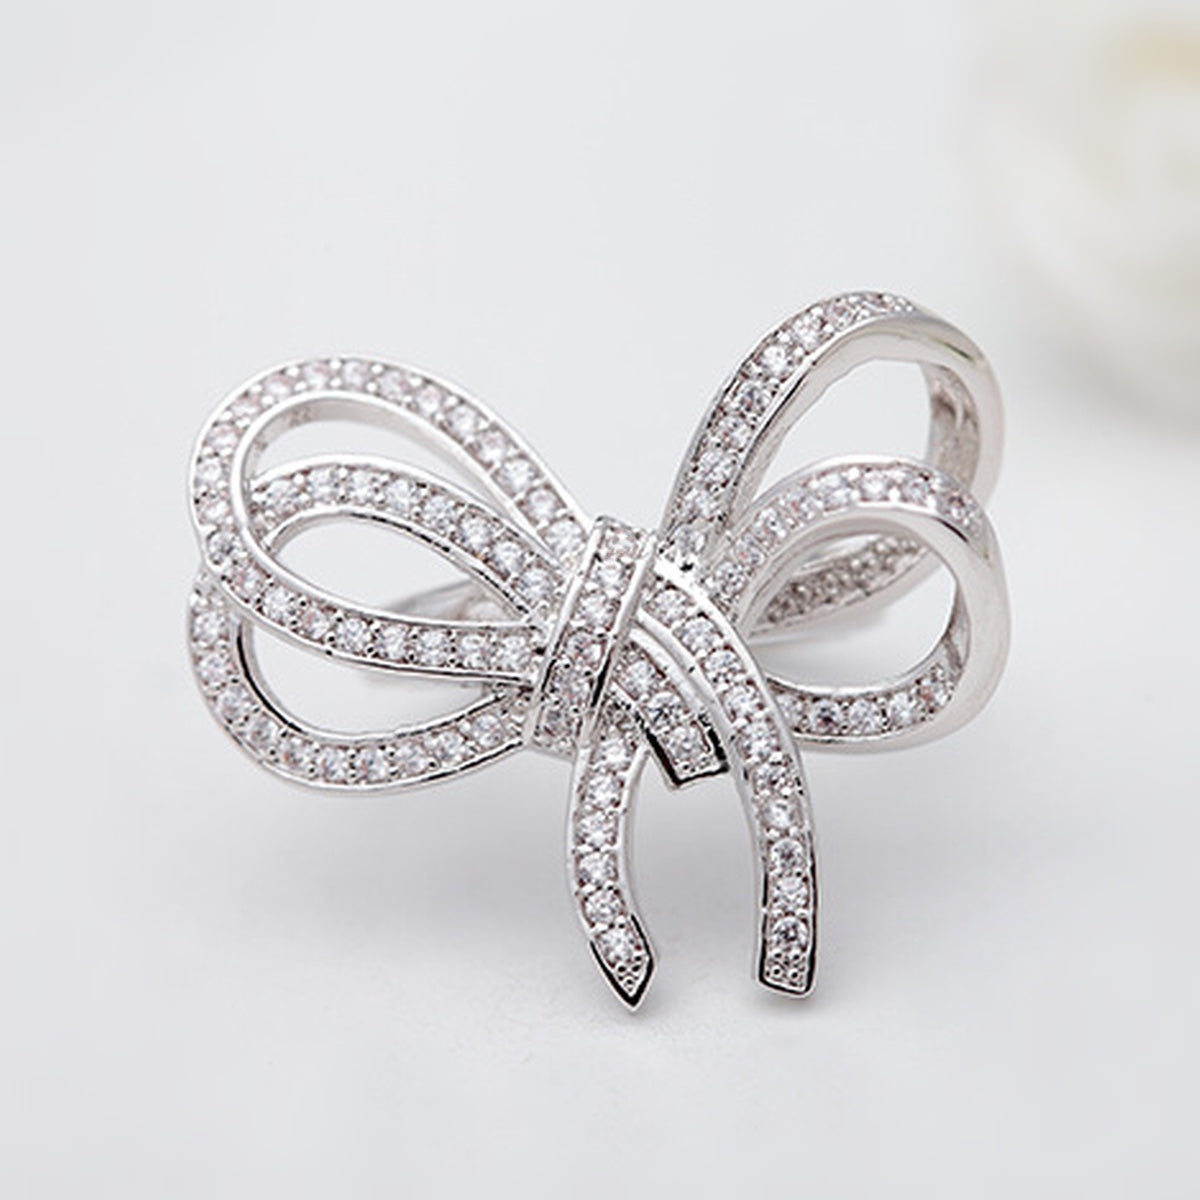 Bowknot Cocktail Ring - GRACE BOUTIQUE UK women jewellery necklace earring bracelet ring broach scarf wrap shawl accessories